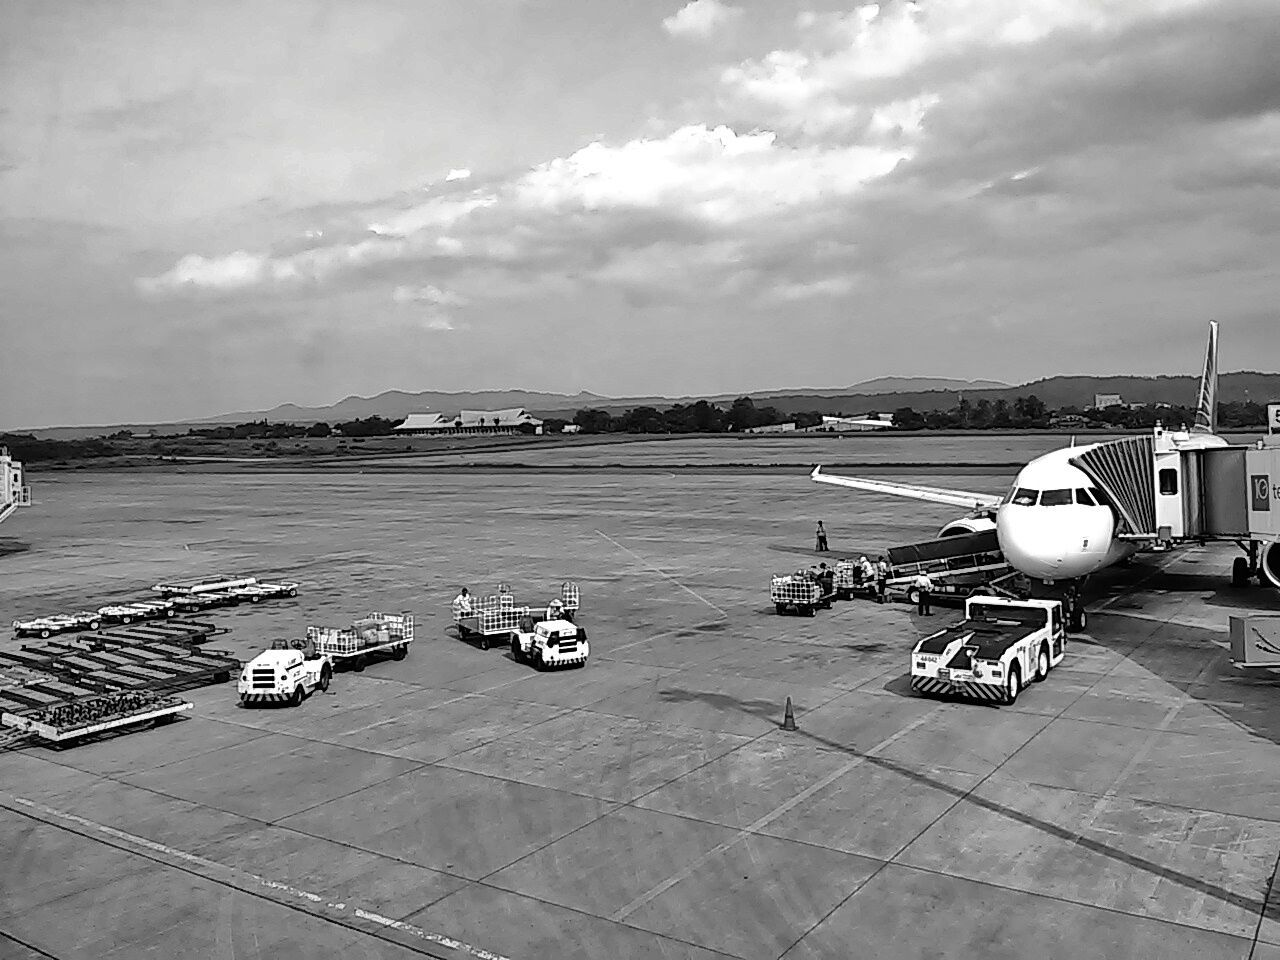 Catching A Flight Bw_ Collection Eyeem Philippines Get Moving Taking Photos Traveling Airport Blackandwhite Monochrome In The Terminal EyeEm Davao